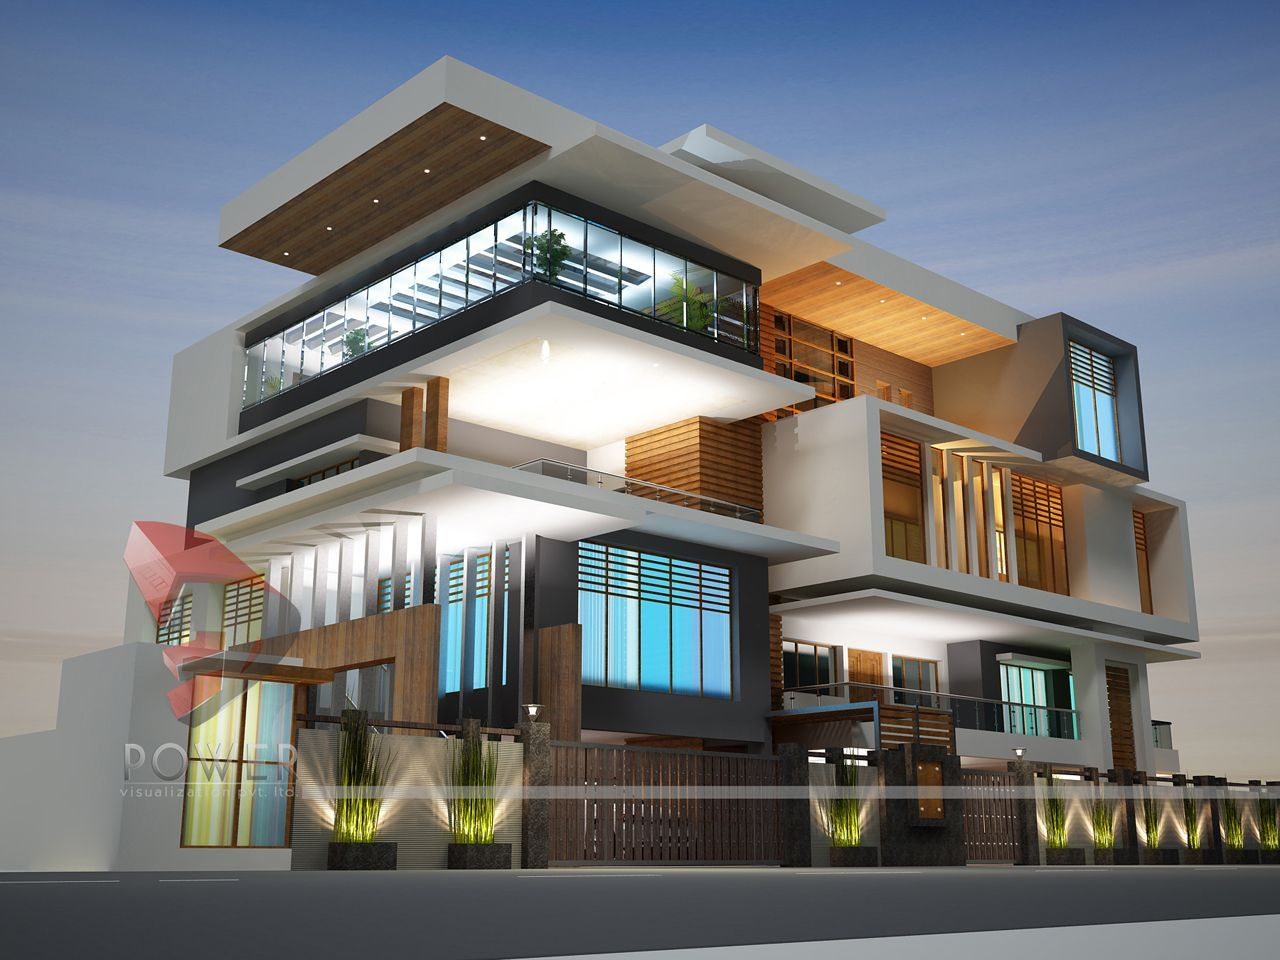 Modern house design in india architecture india modern for Luxury home designers architects